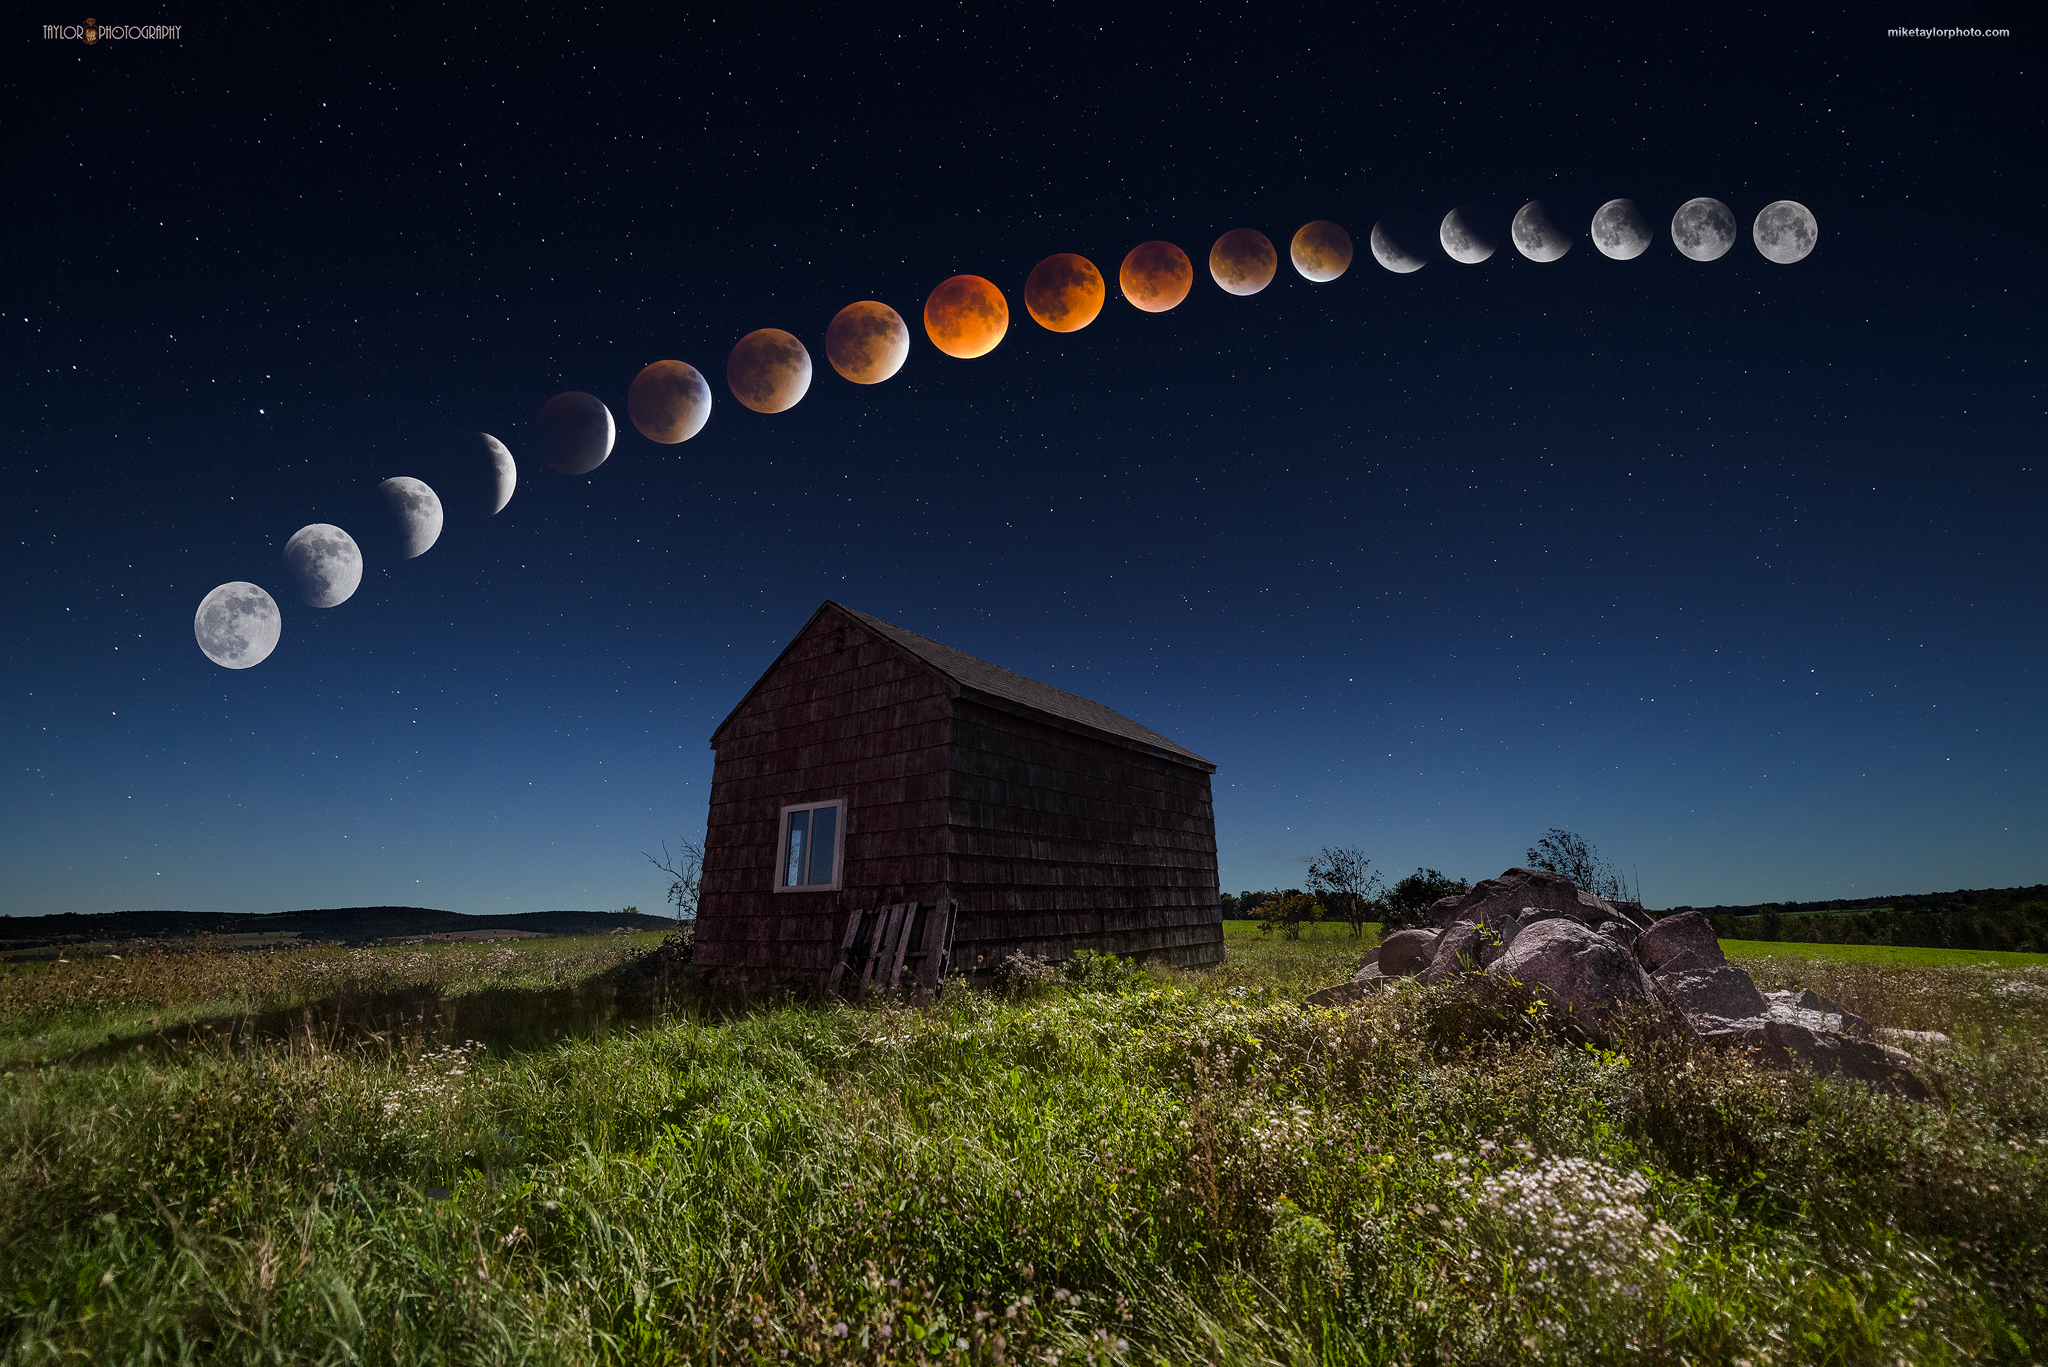 blood moon meaning folklore - photo #39